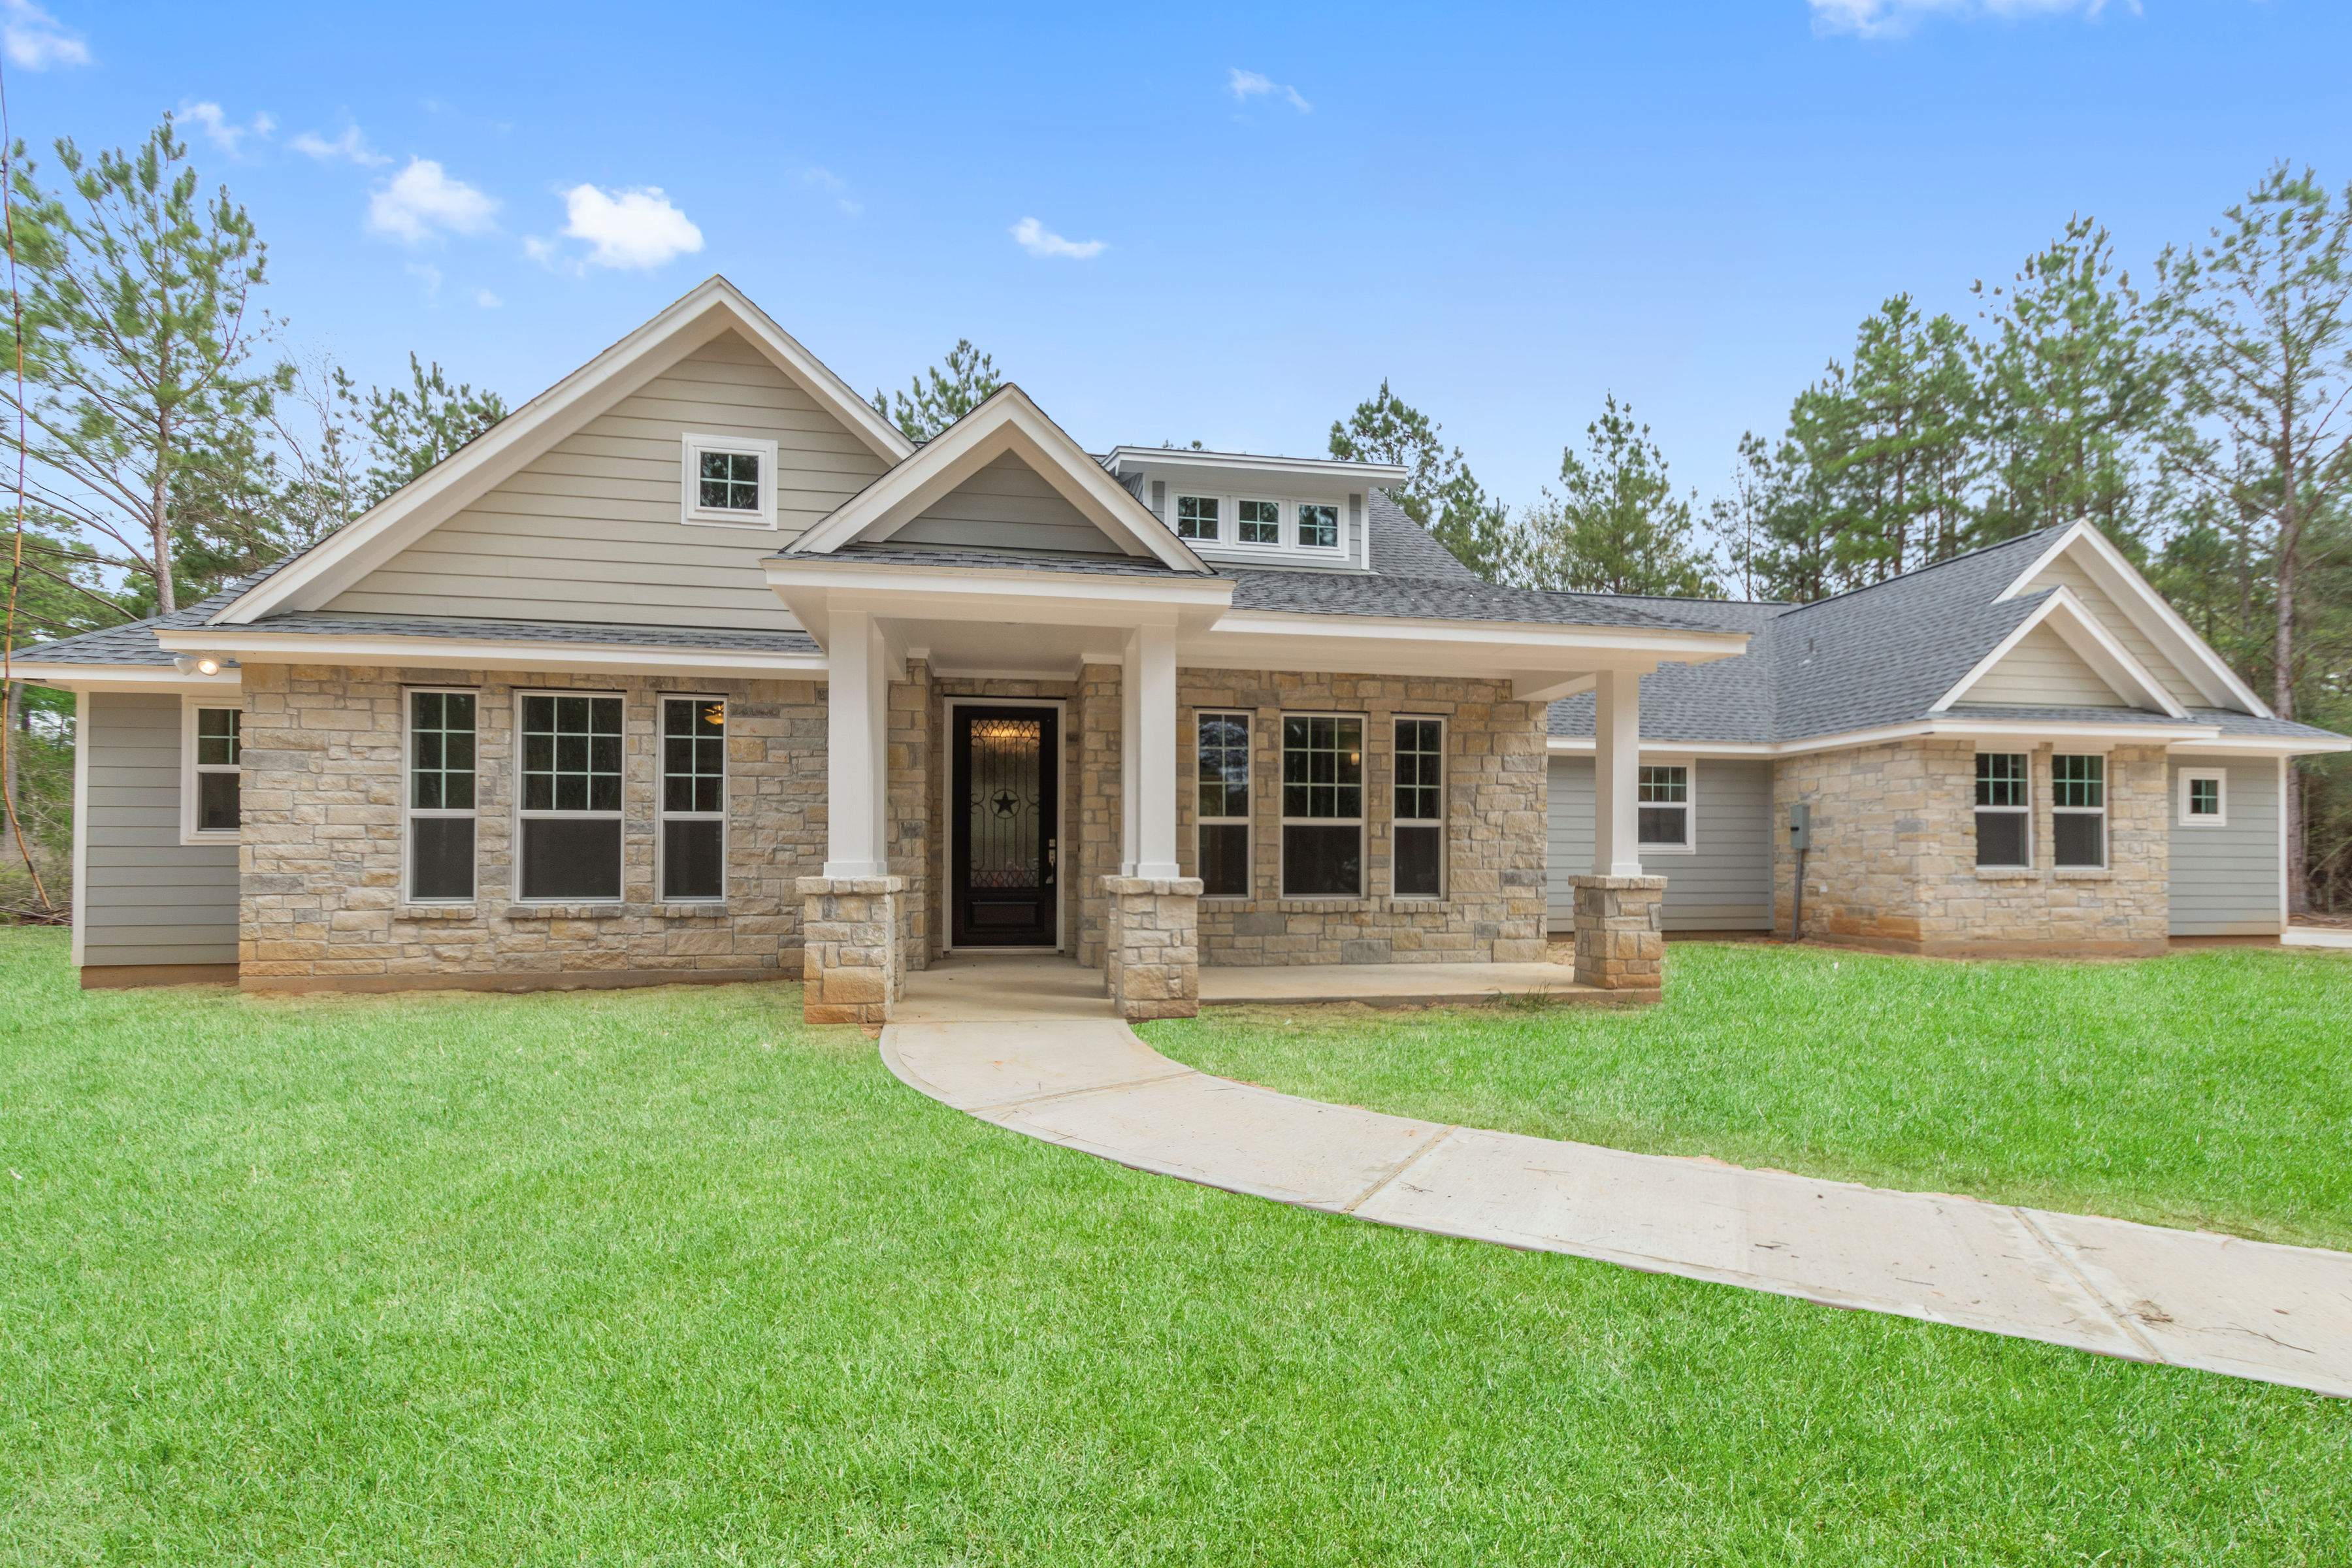 The Saddle Creek - Selections & Features of this Custom Home